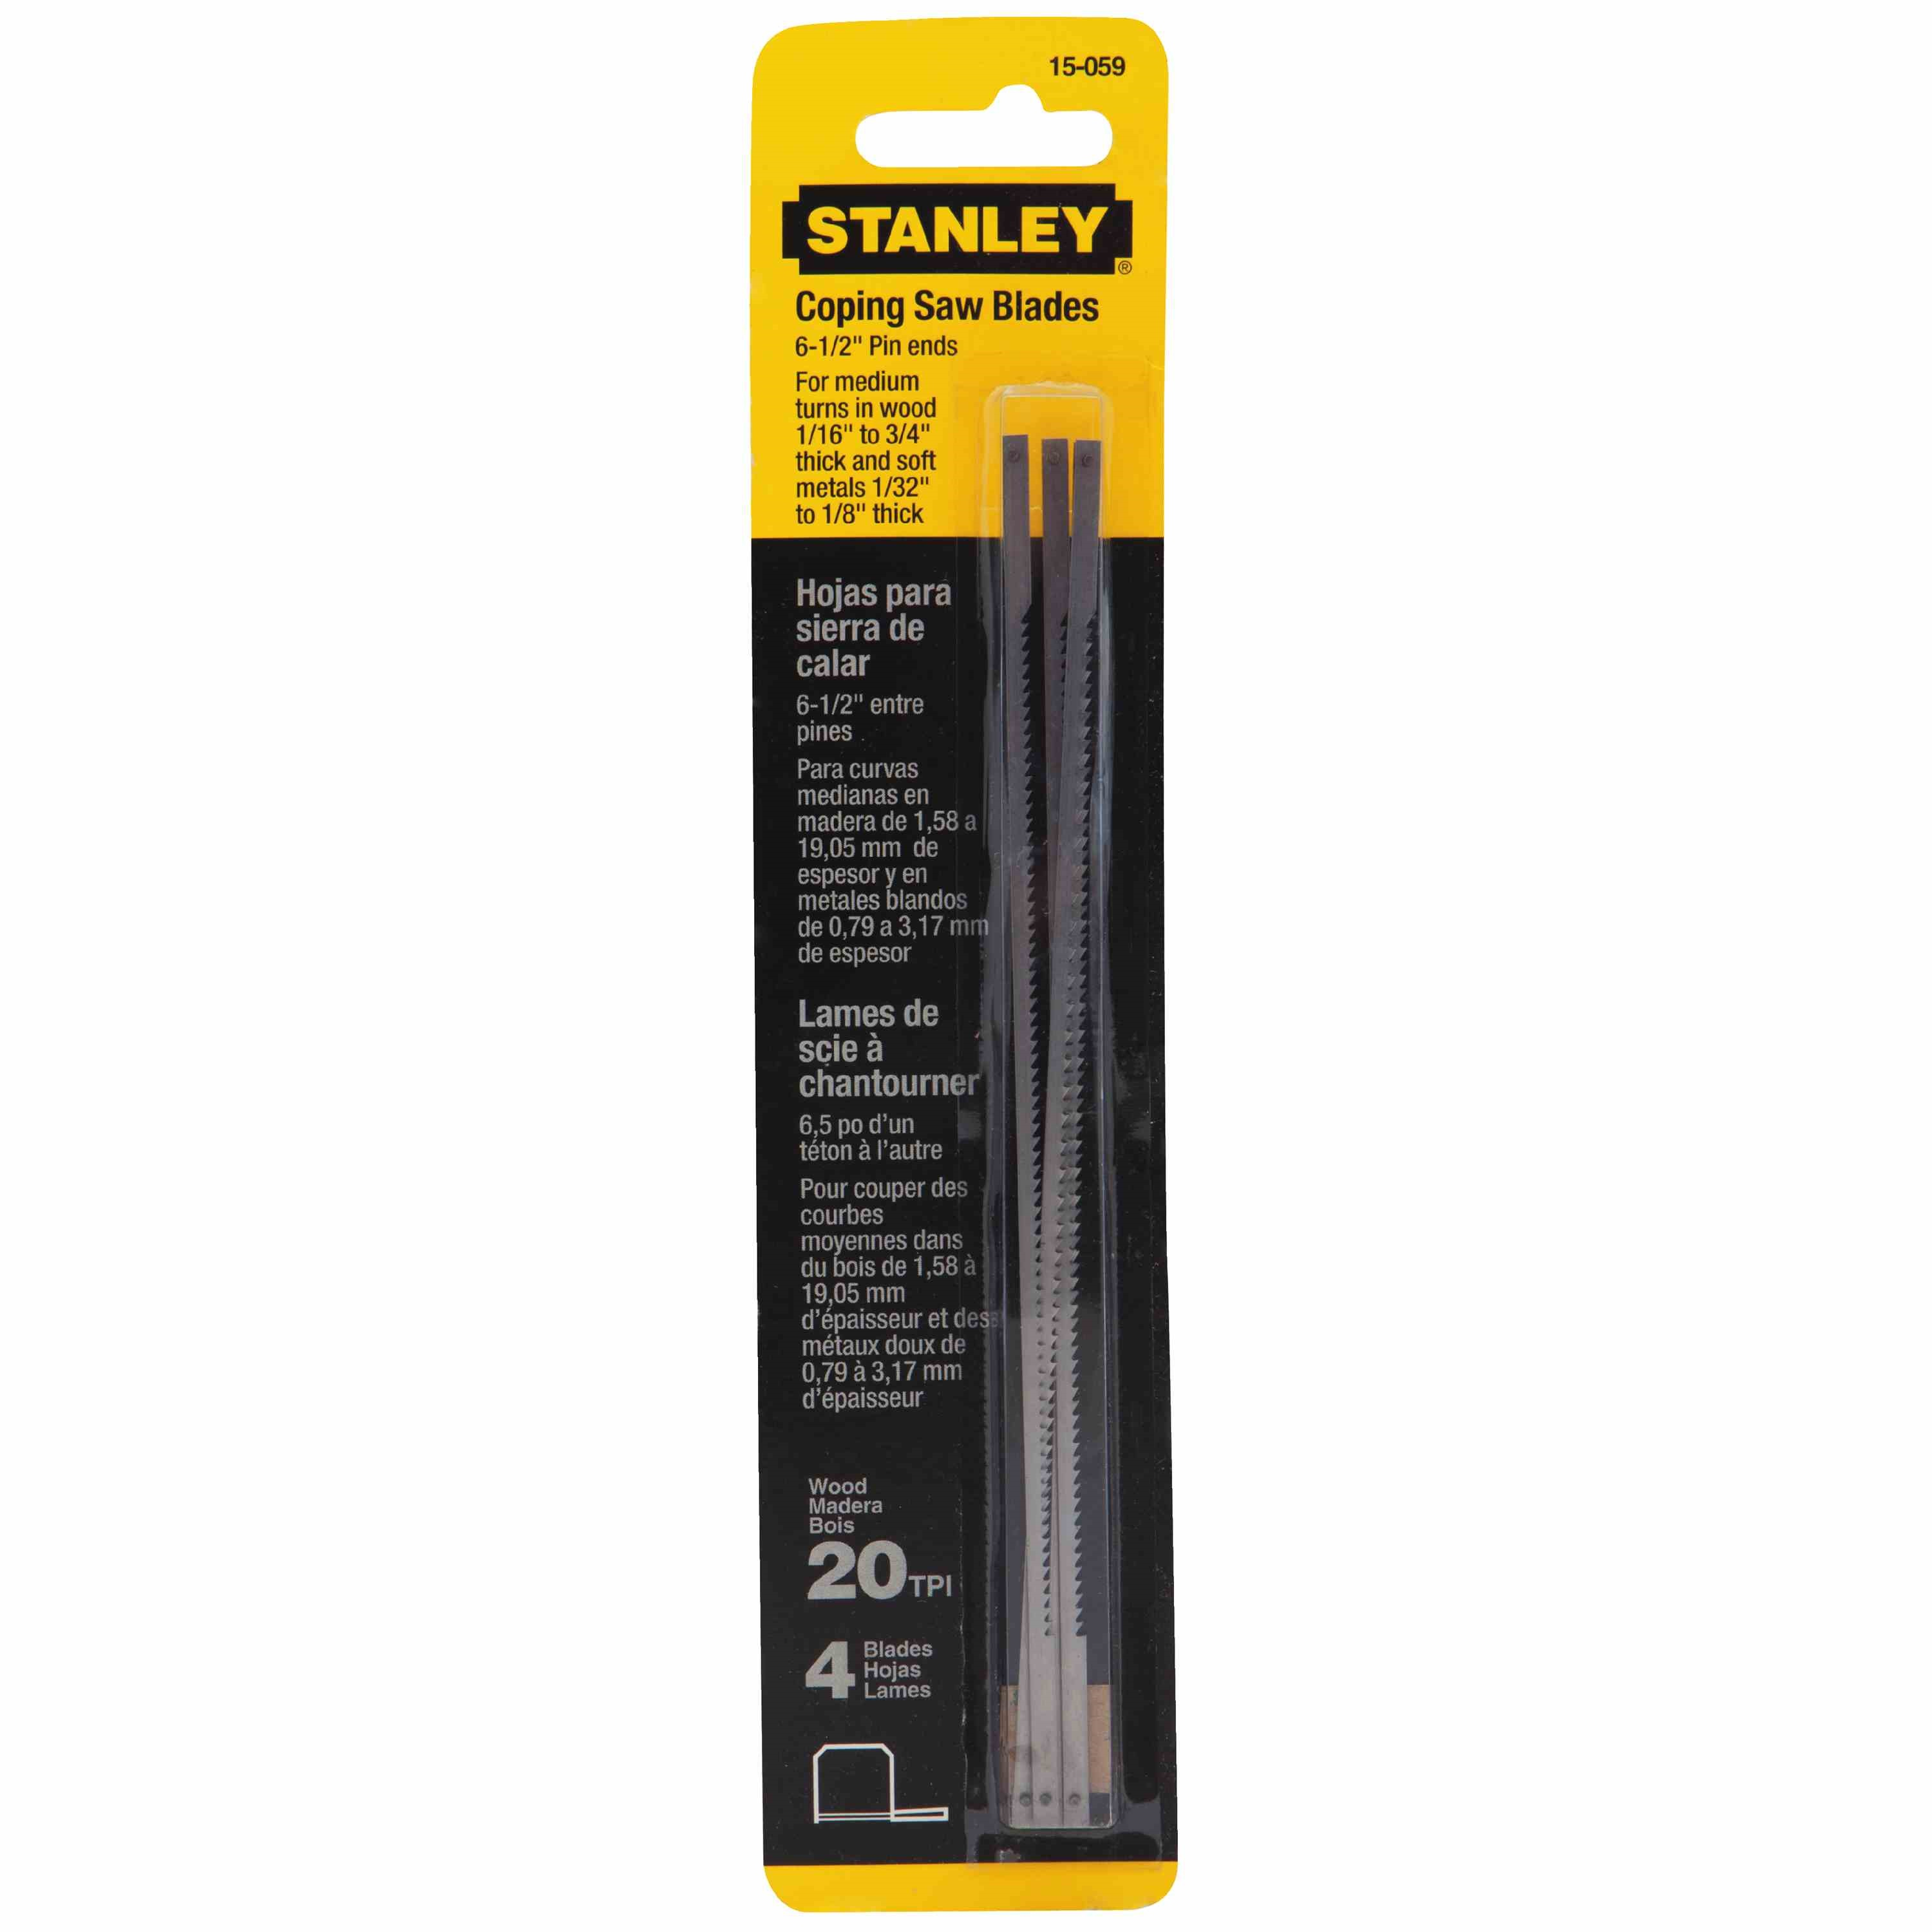 Stanley Tools - 4 pk 612 in x 20 TPI Coping Saw Blades - 15-059